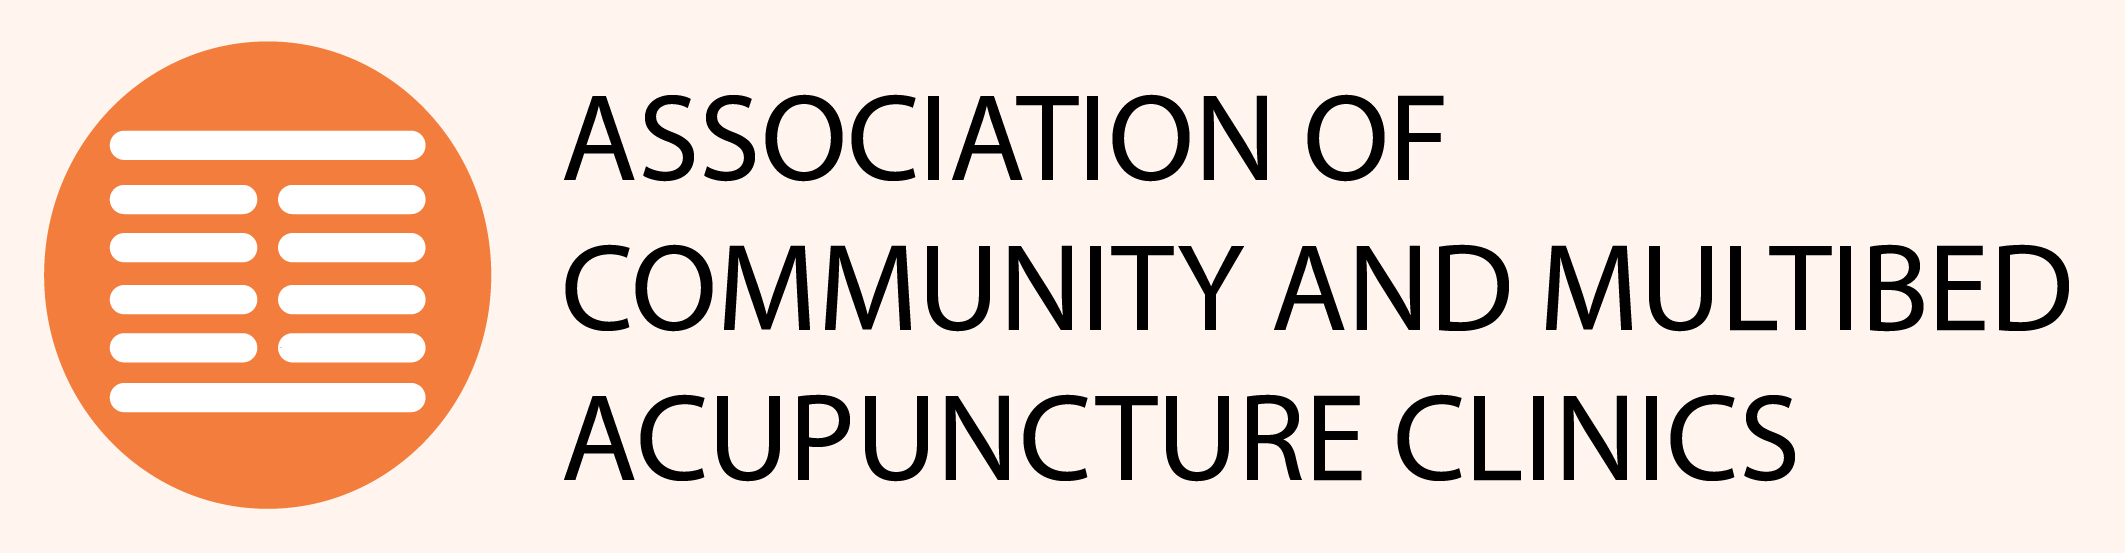 Member_of_the_Association_of_Community_and_Multibed_Acupuncture_Clinics